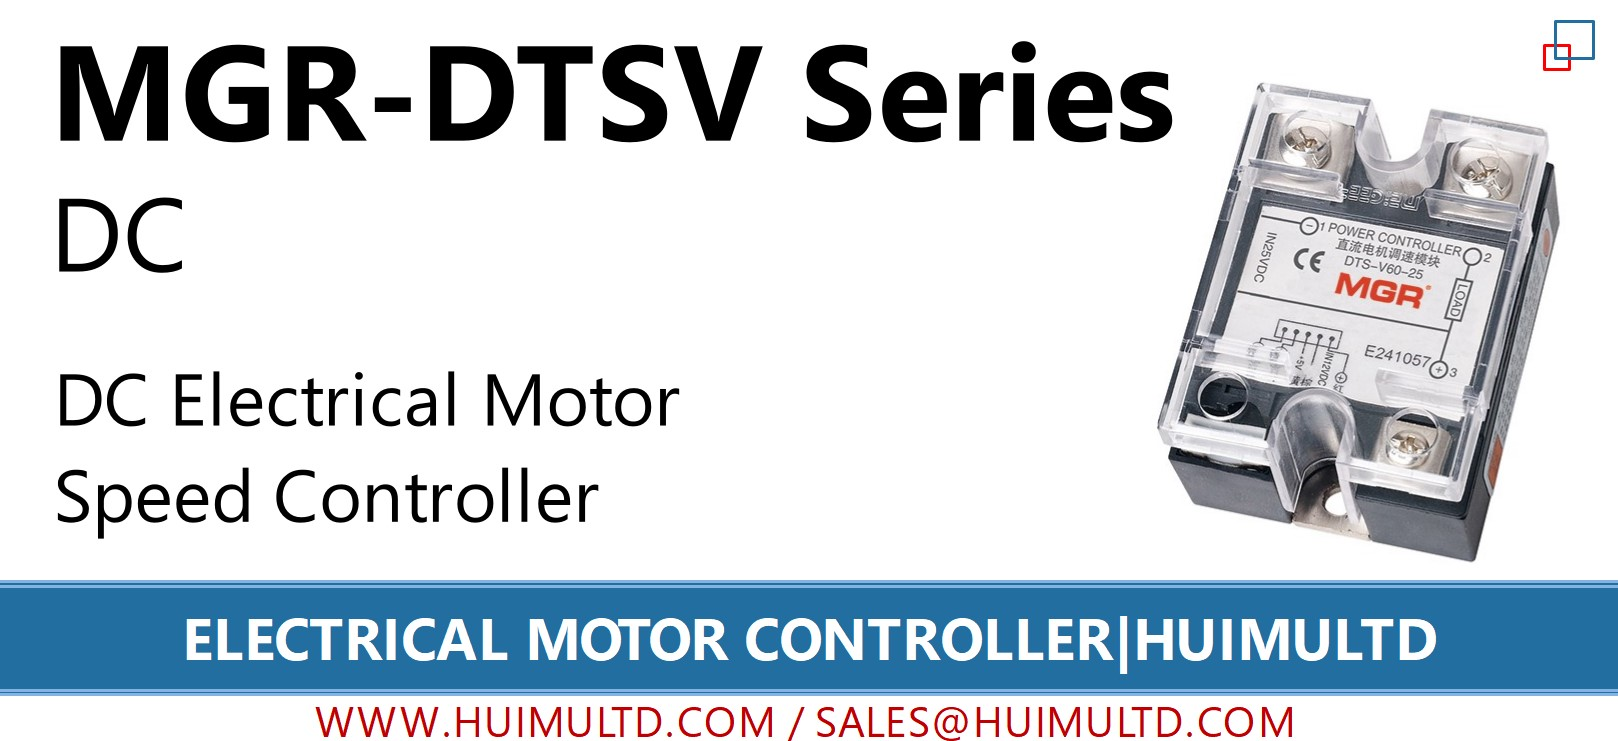 MGR-DTSV Series Electrical Motor Controller